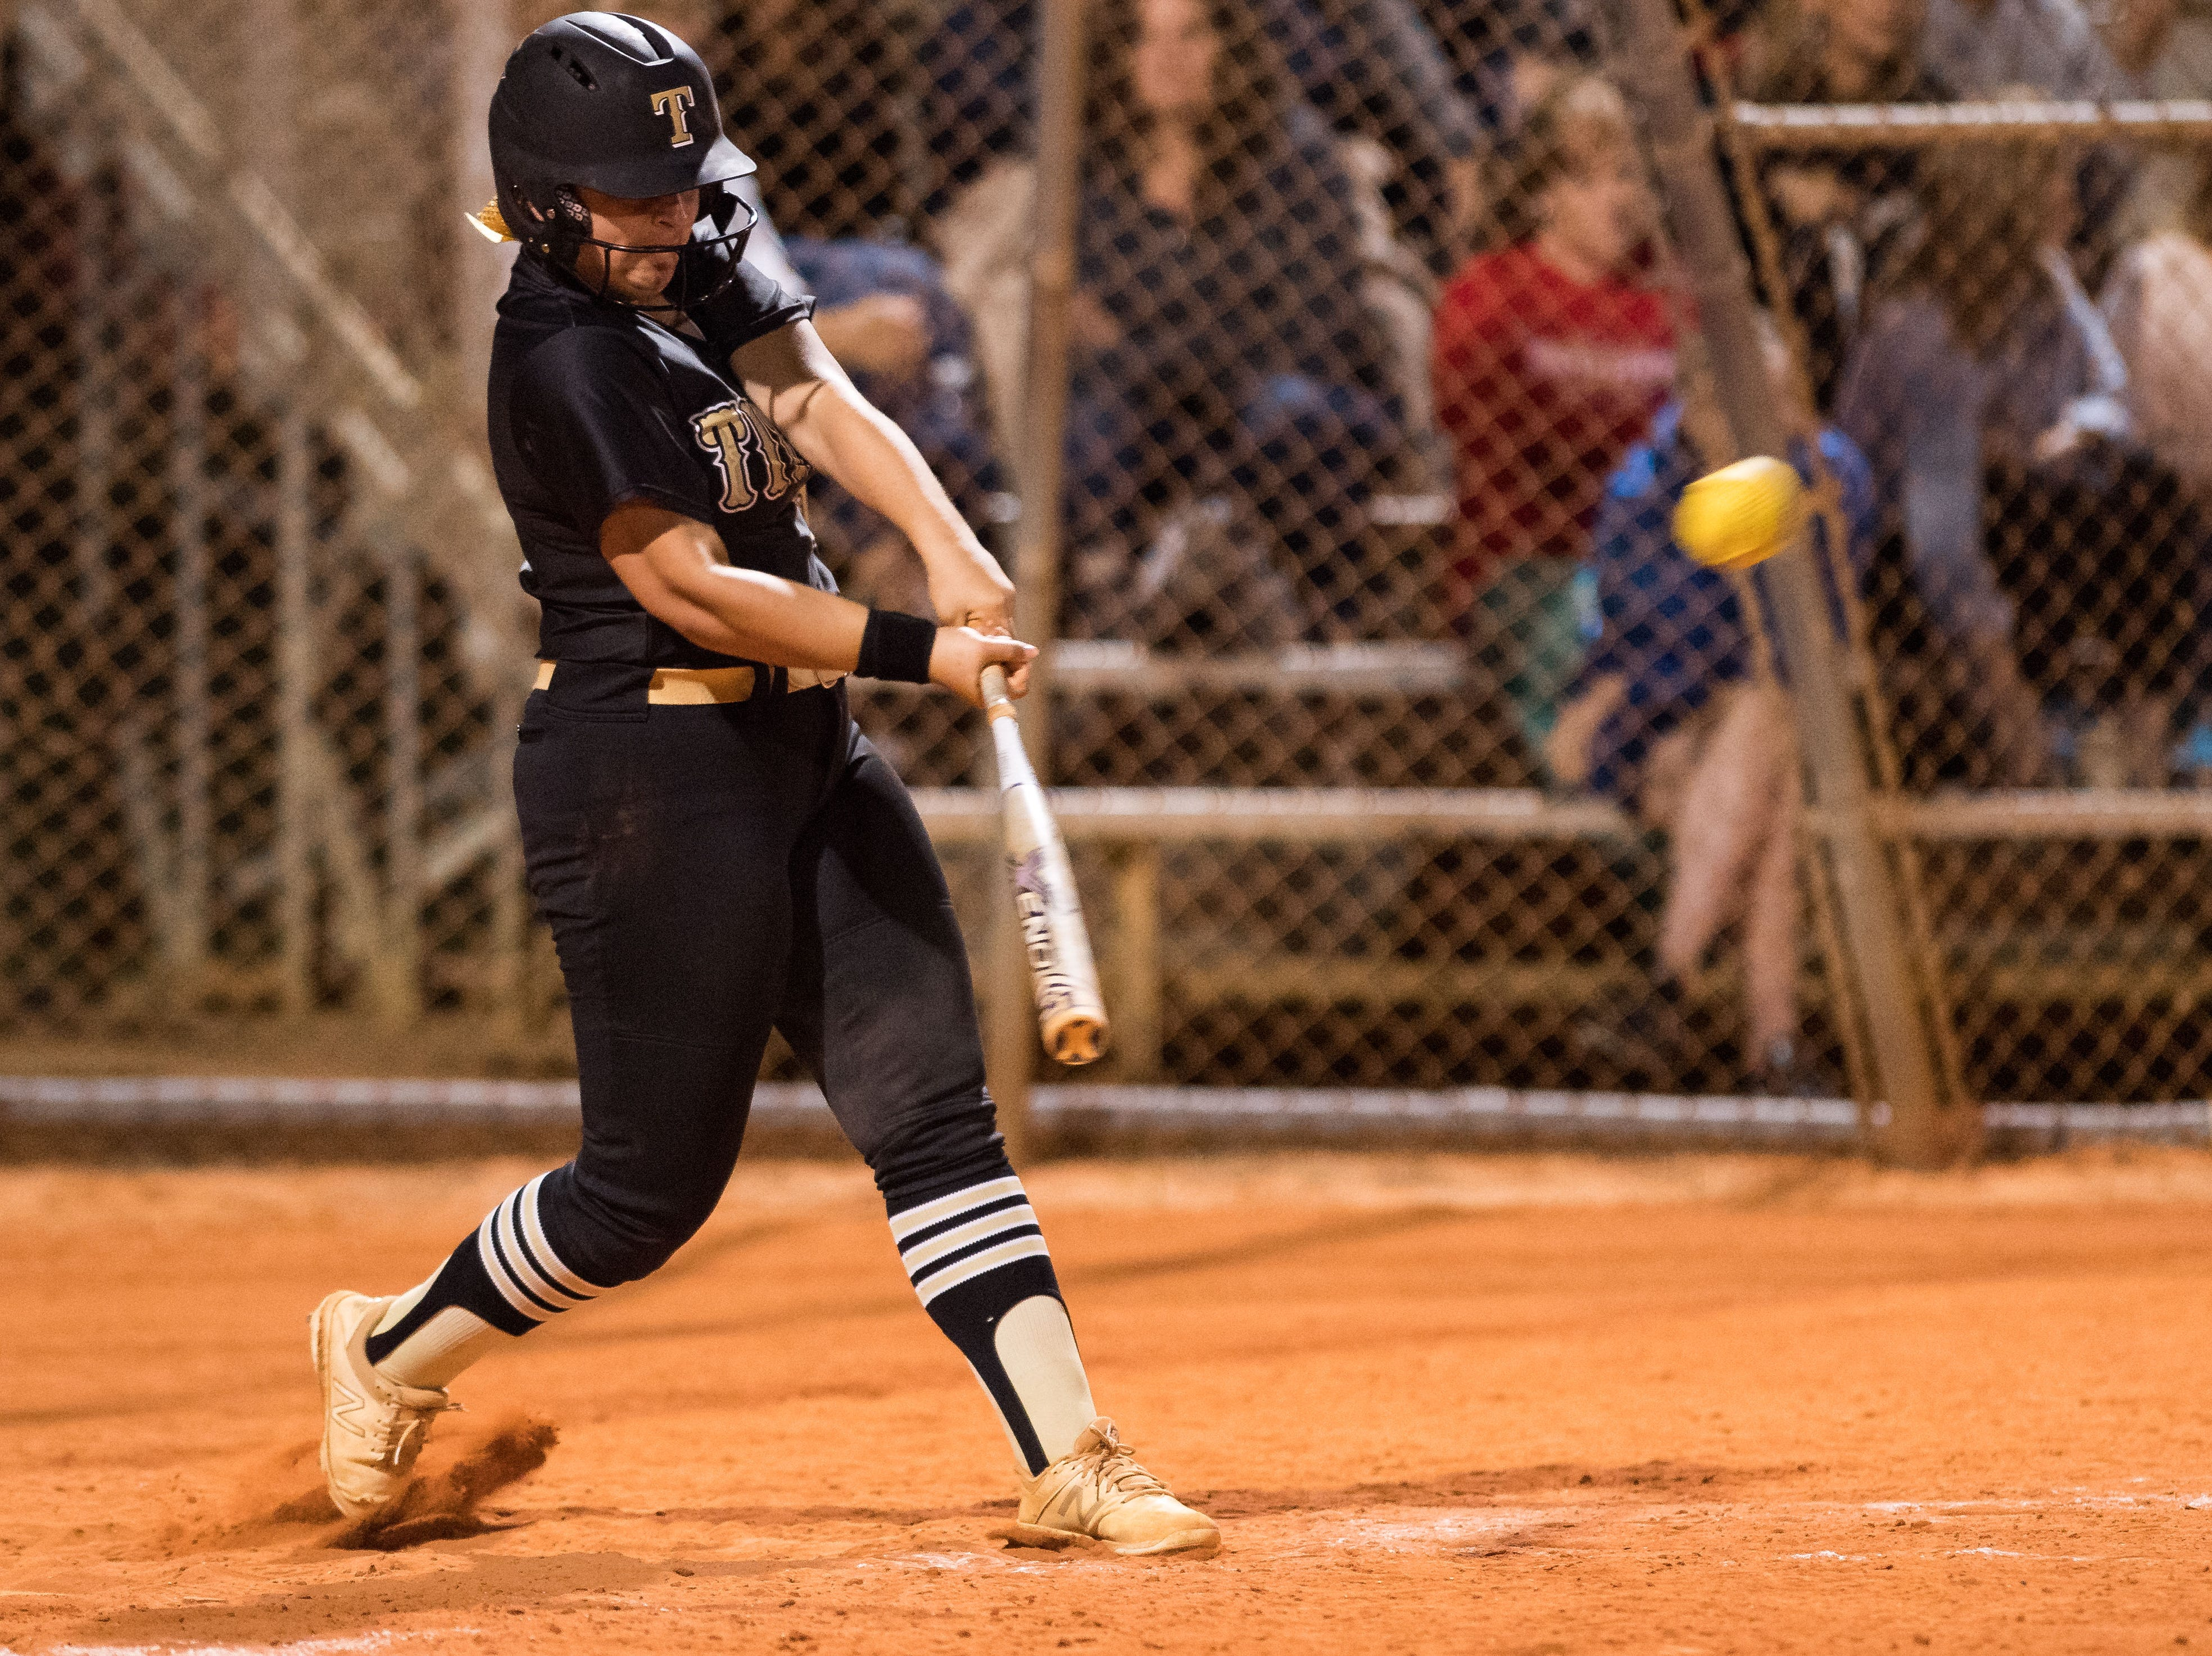 Treasure Coast's 6 hits a double, inches away from a home run, against Vero Beach during the sixth inning of the high school softball game Friday, March 29, 2019, at Vero Beach High School.